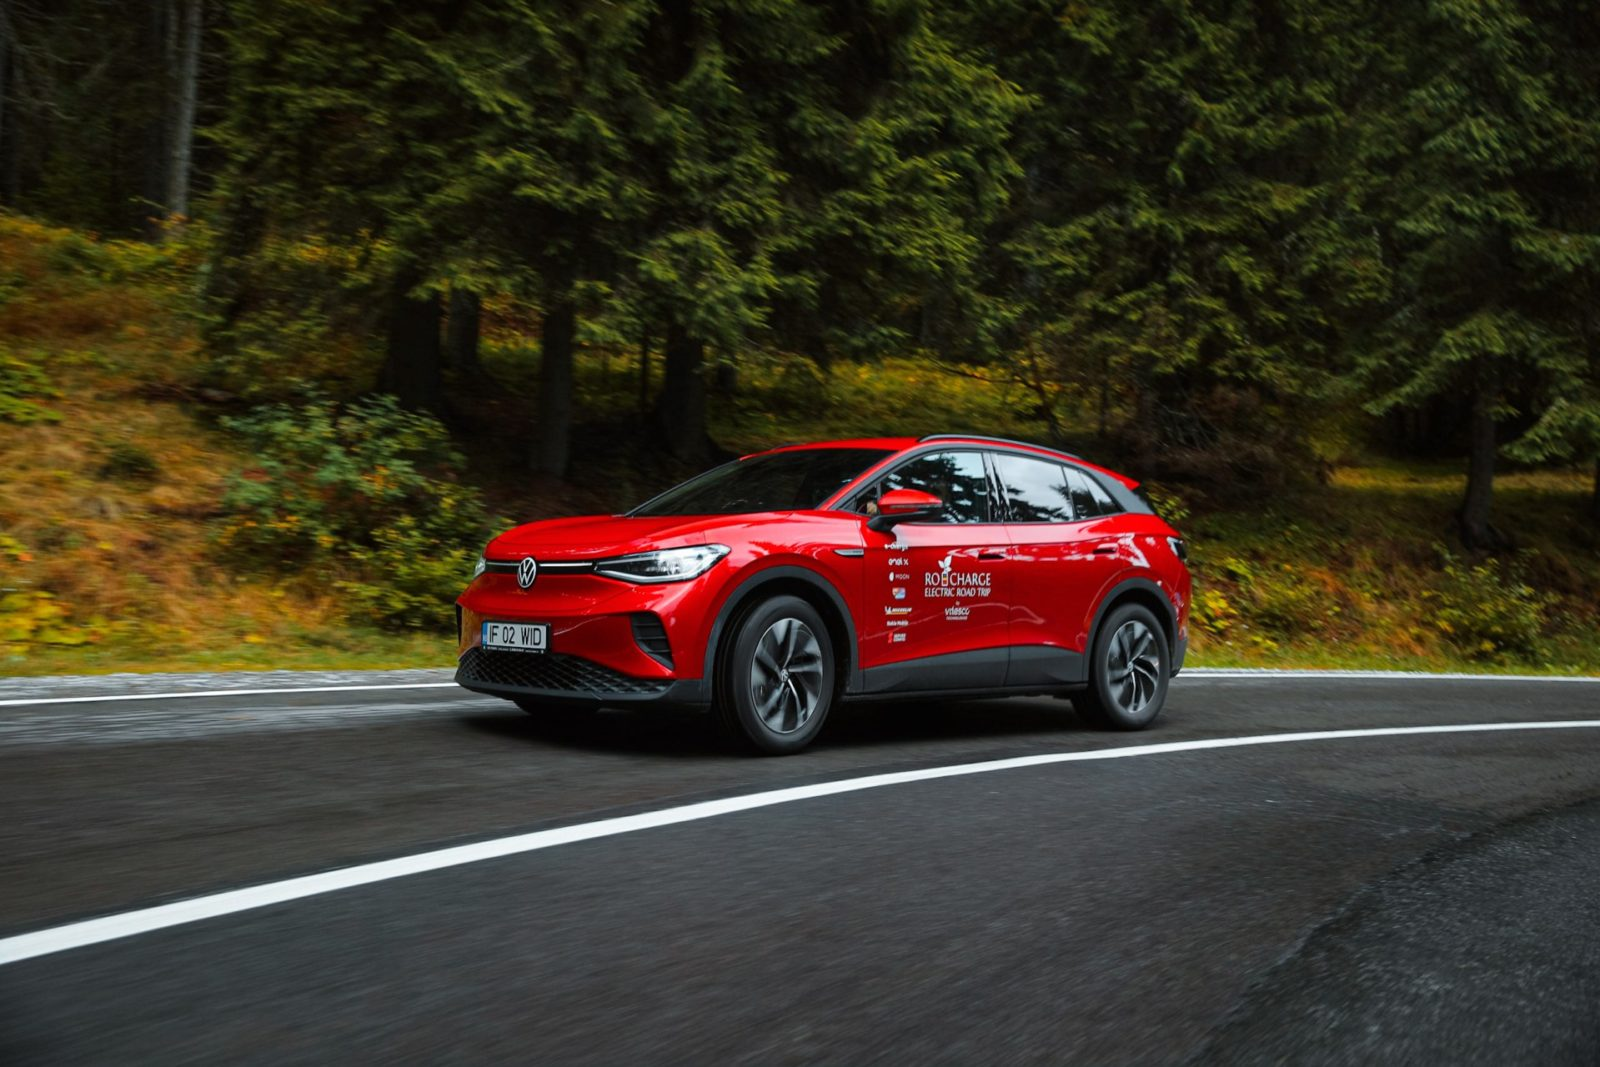 driven:-2021-volkswagen-id.4,-the-first-electric-crossover-from-vw